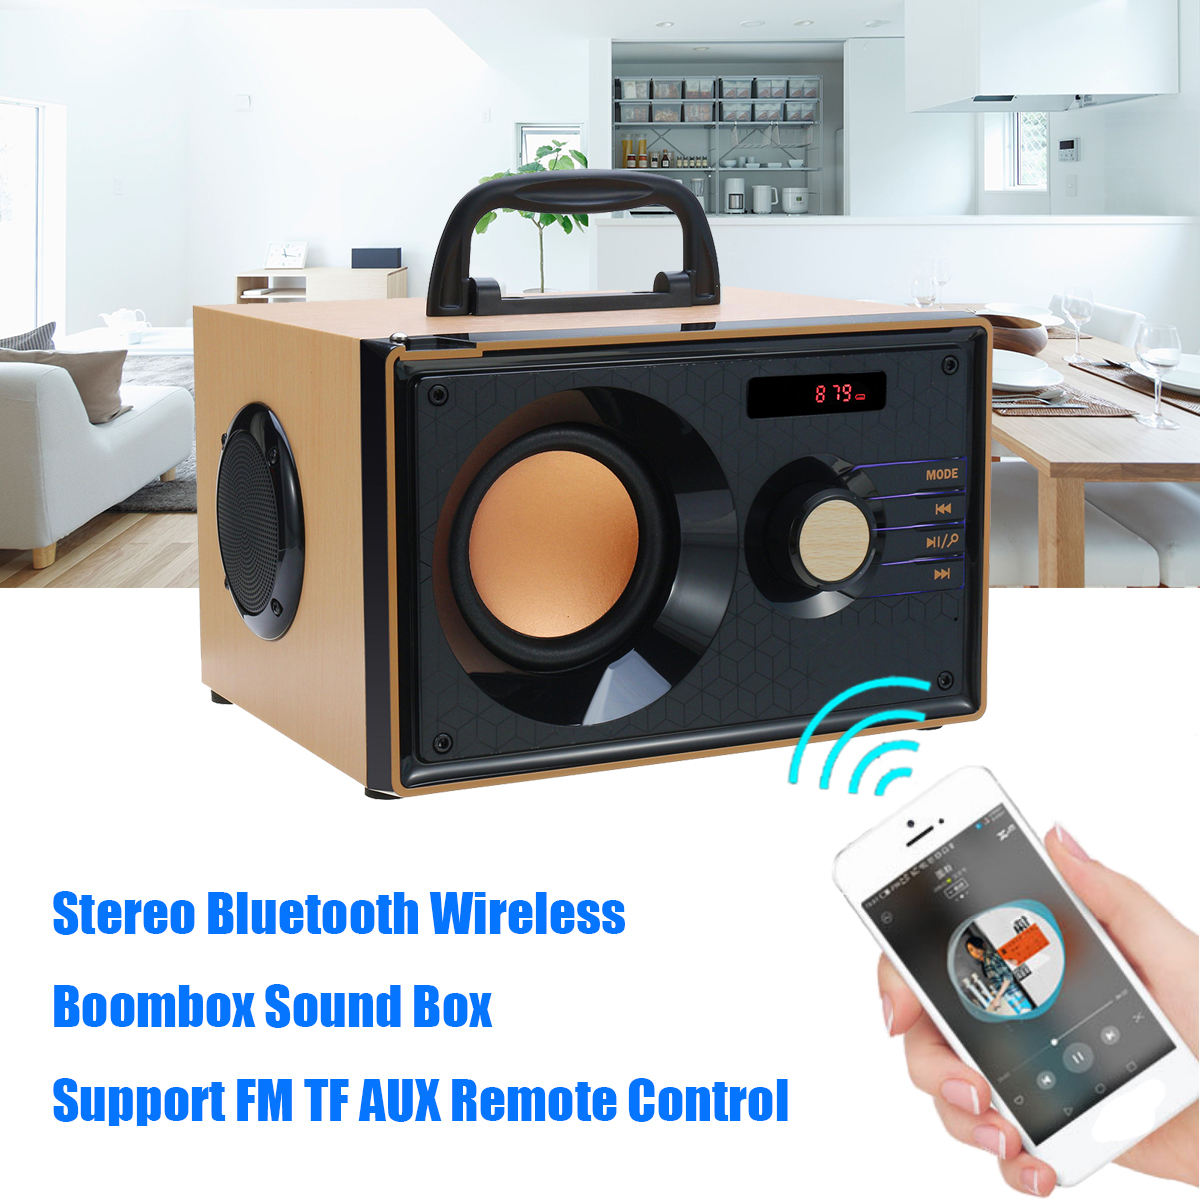 Stereo Bluetooth Speaker Subwoofer Heavy Bass Wireless Big Speakers Boombox Sound Box Support FM TF Home Theater Amplifiers exrizu ms 136bt portable wireless bluetooth speakers 15w outdoor led light speaker subwoofer super bass music boombox tf radio